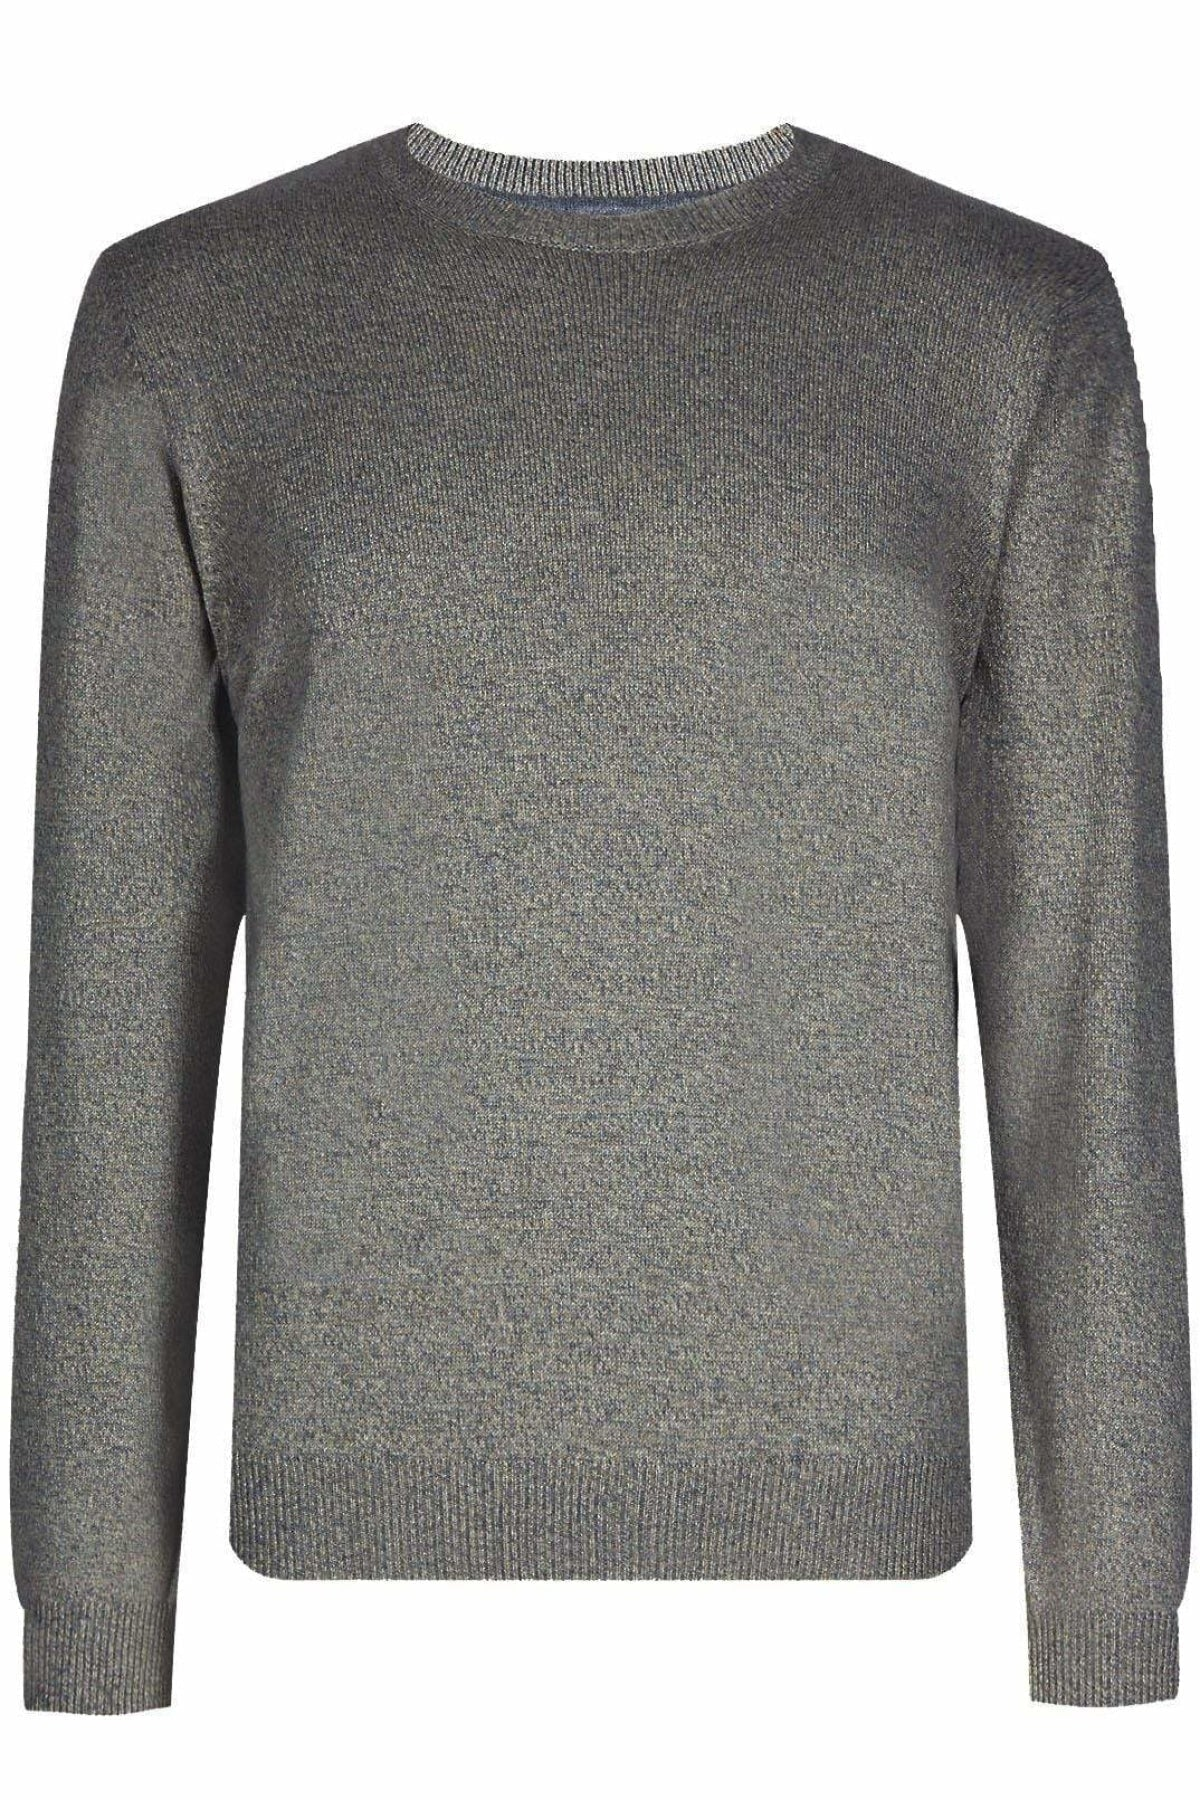 Marks & Spencer Crew Neck Pure Cotton Jumper | S / Grey Secret Label